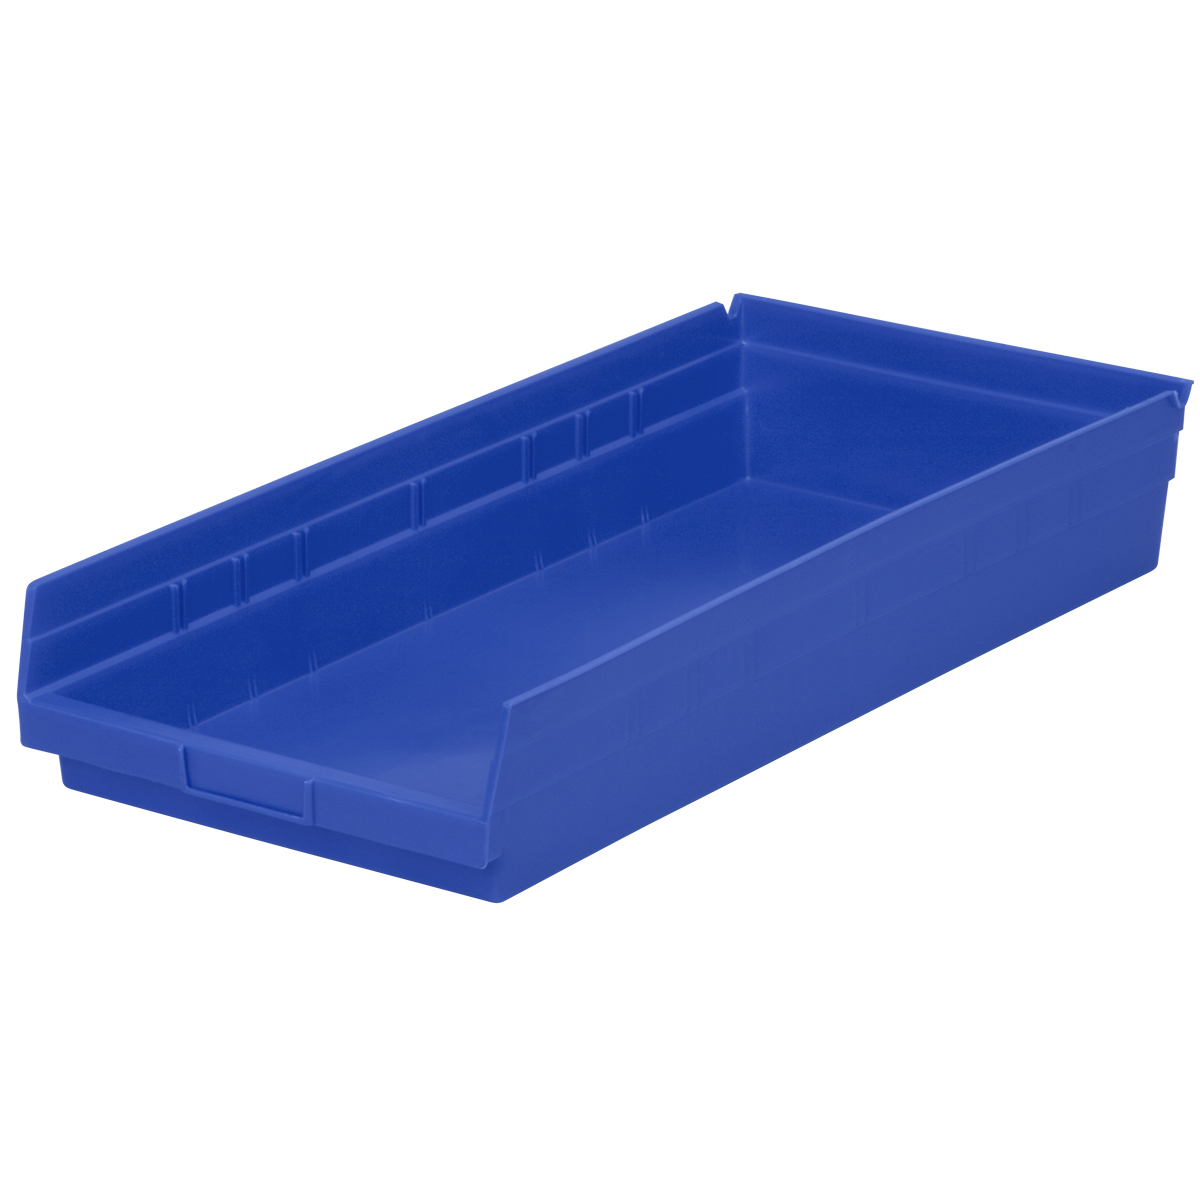 Shelf Bin 23-5/8 x 11-1/8 x 4, Blue (30174BLUE).  This item sold in carton quantities of 6.